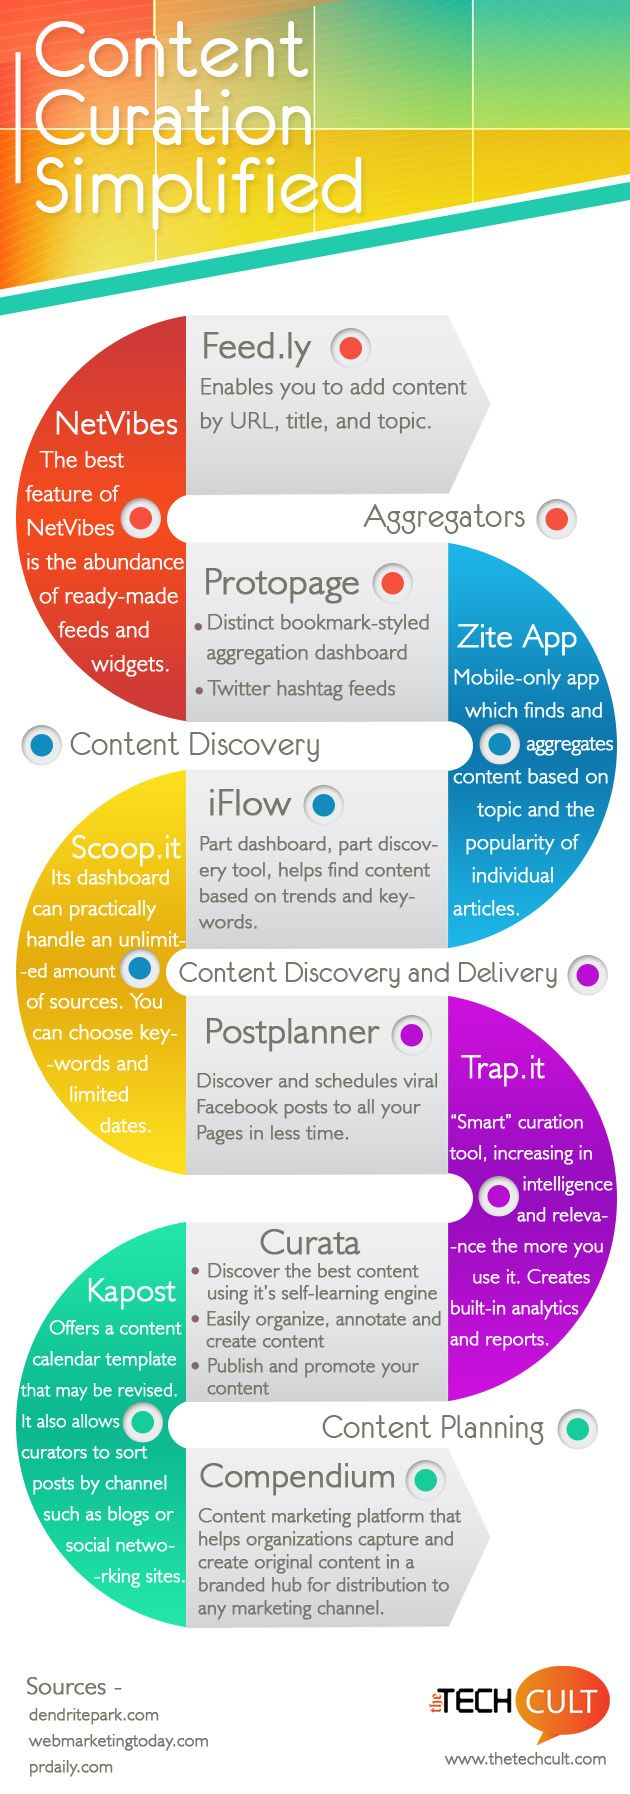 Content Curation Tools: An #Infographic - #contentmarketing